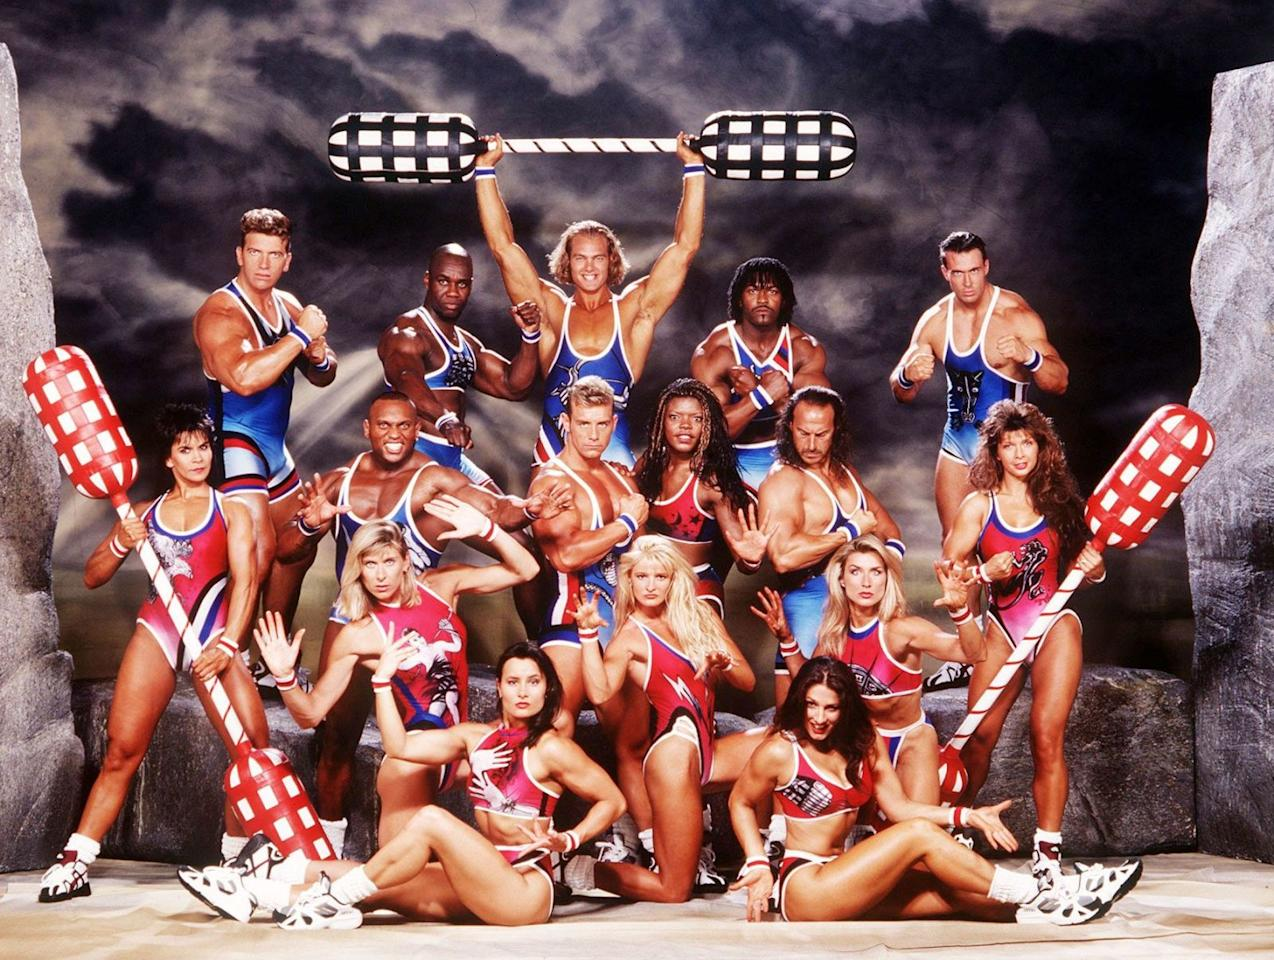 <p>They were seemingly superhuman powerhouses, forces to be reckoned with – and only occasionally tamed by strict referee John Anderson. Originally hosted by John Fashanu and Ulrika Jonsson, <em>Gladiators</em> launched 25 years ago this month. But where are those man- and woman-mountains now?<span></span></p>